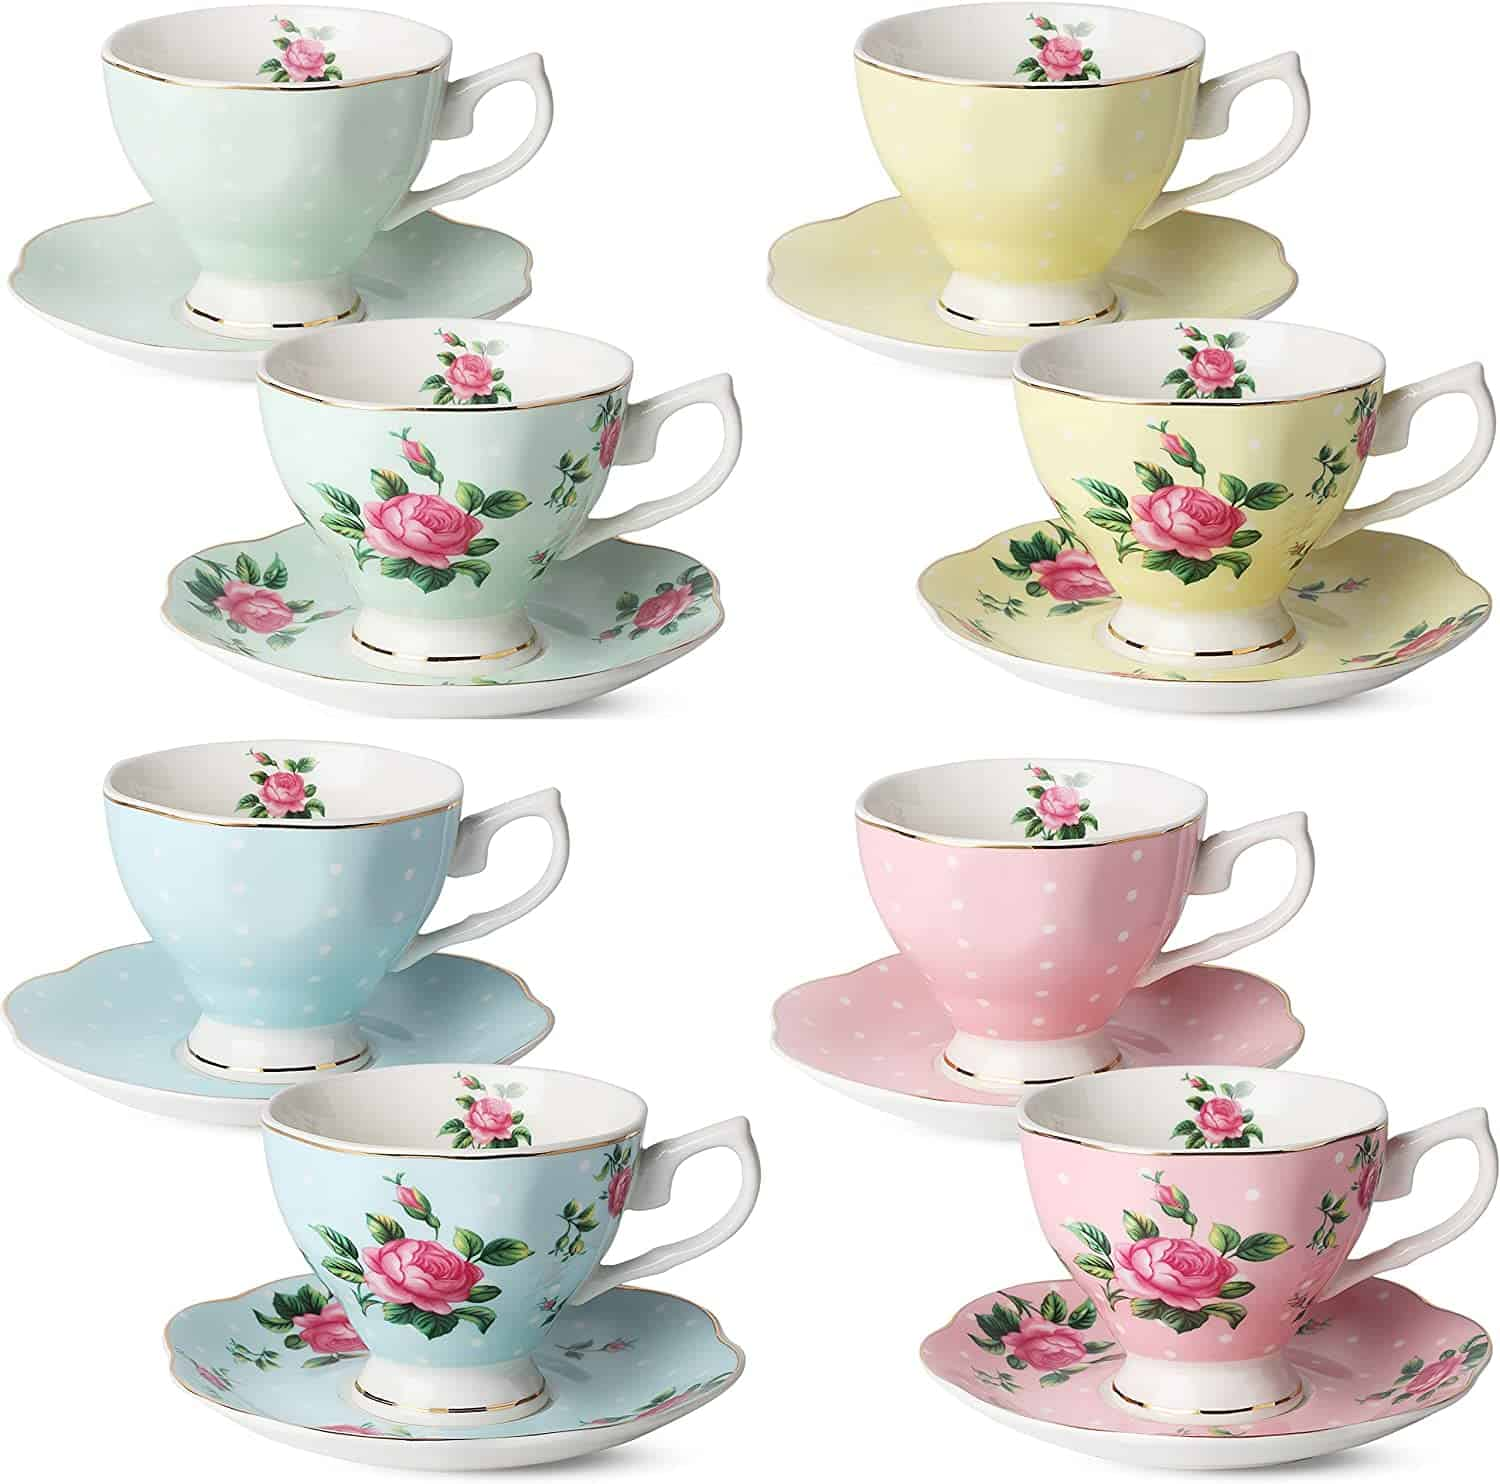 Brew To A Tea Floral Tea Cups And Saucers Set Of 8